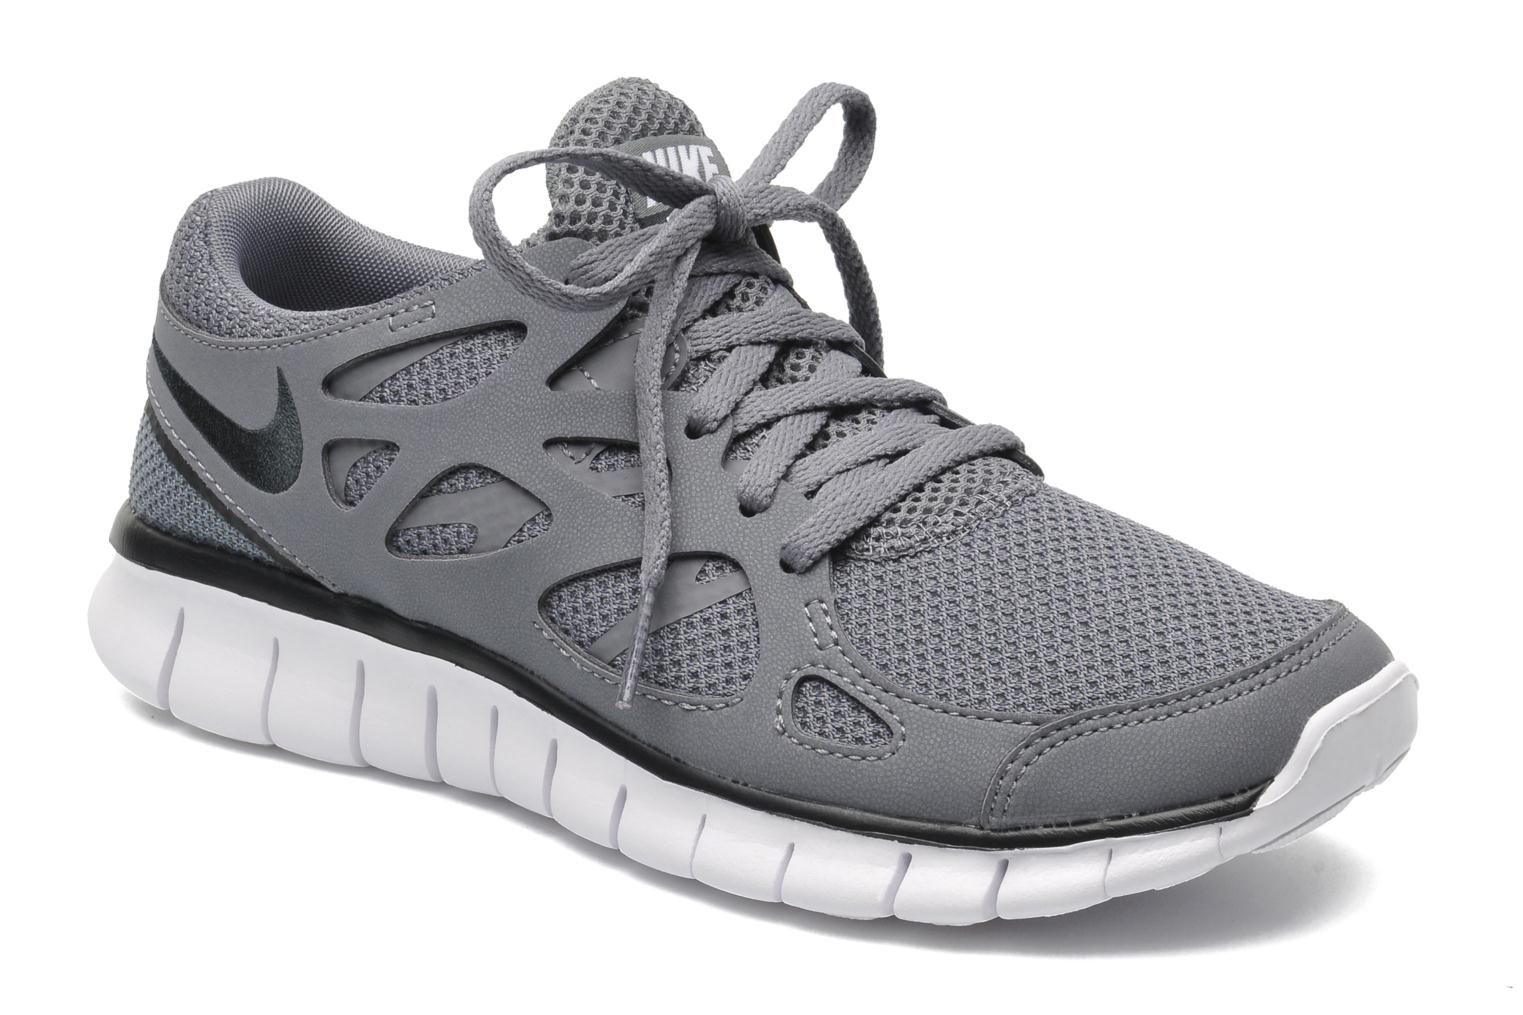 Wmns Nike Free Run+ 2 Ext Cool Grey/Anthracite-Blk-White